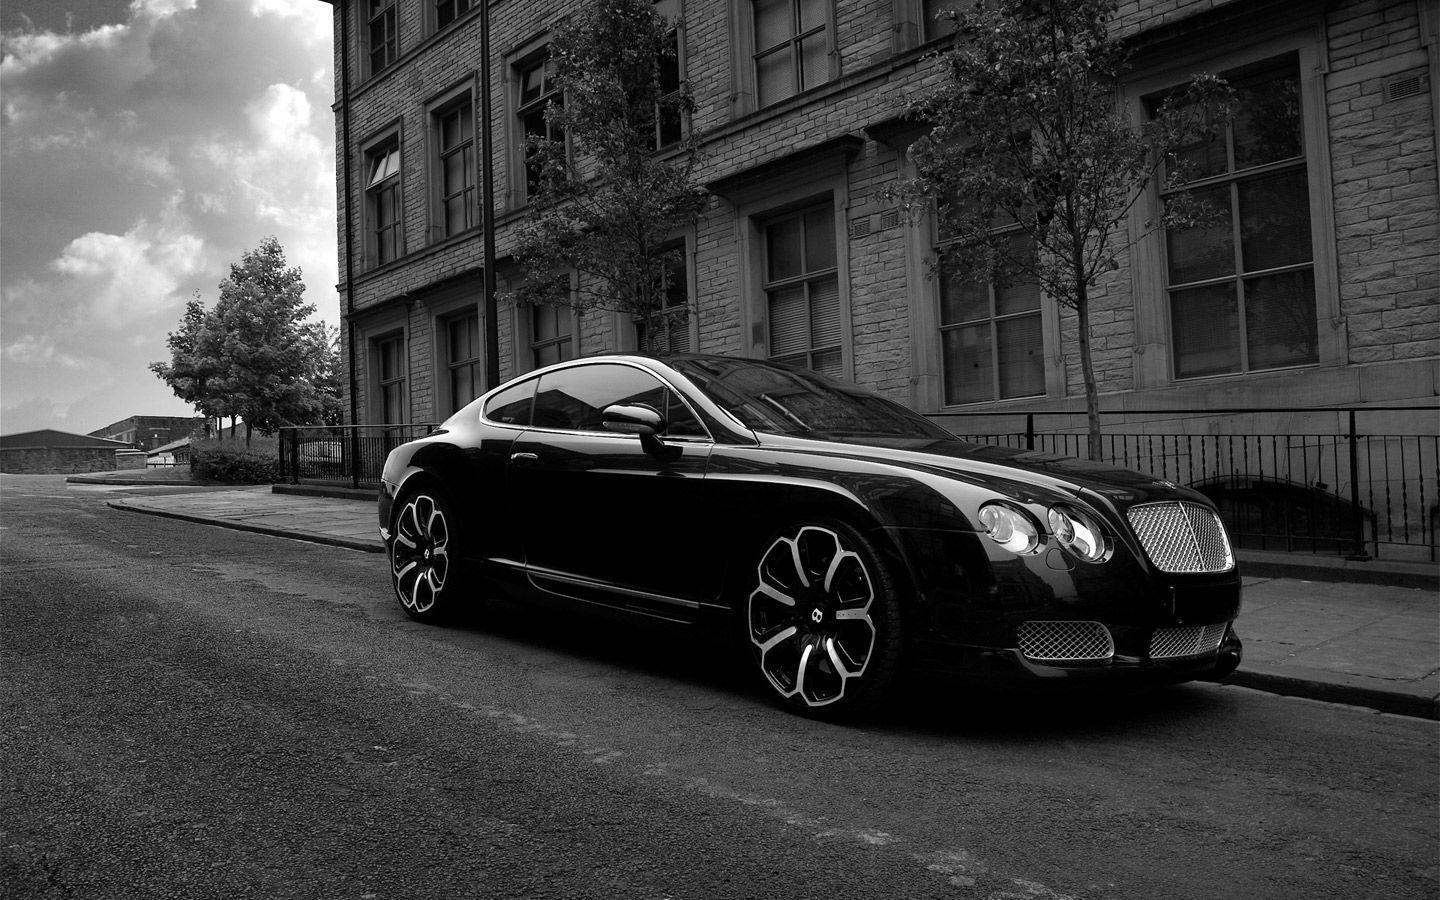 Bently wallpapers wallpaper cave - Car wallpaper black and white ...